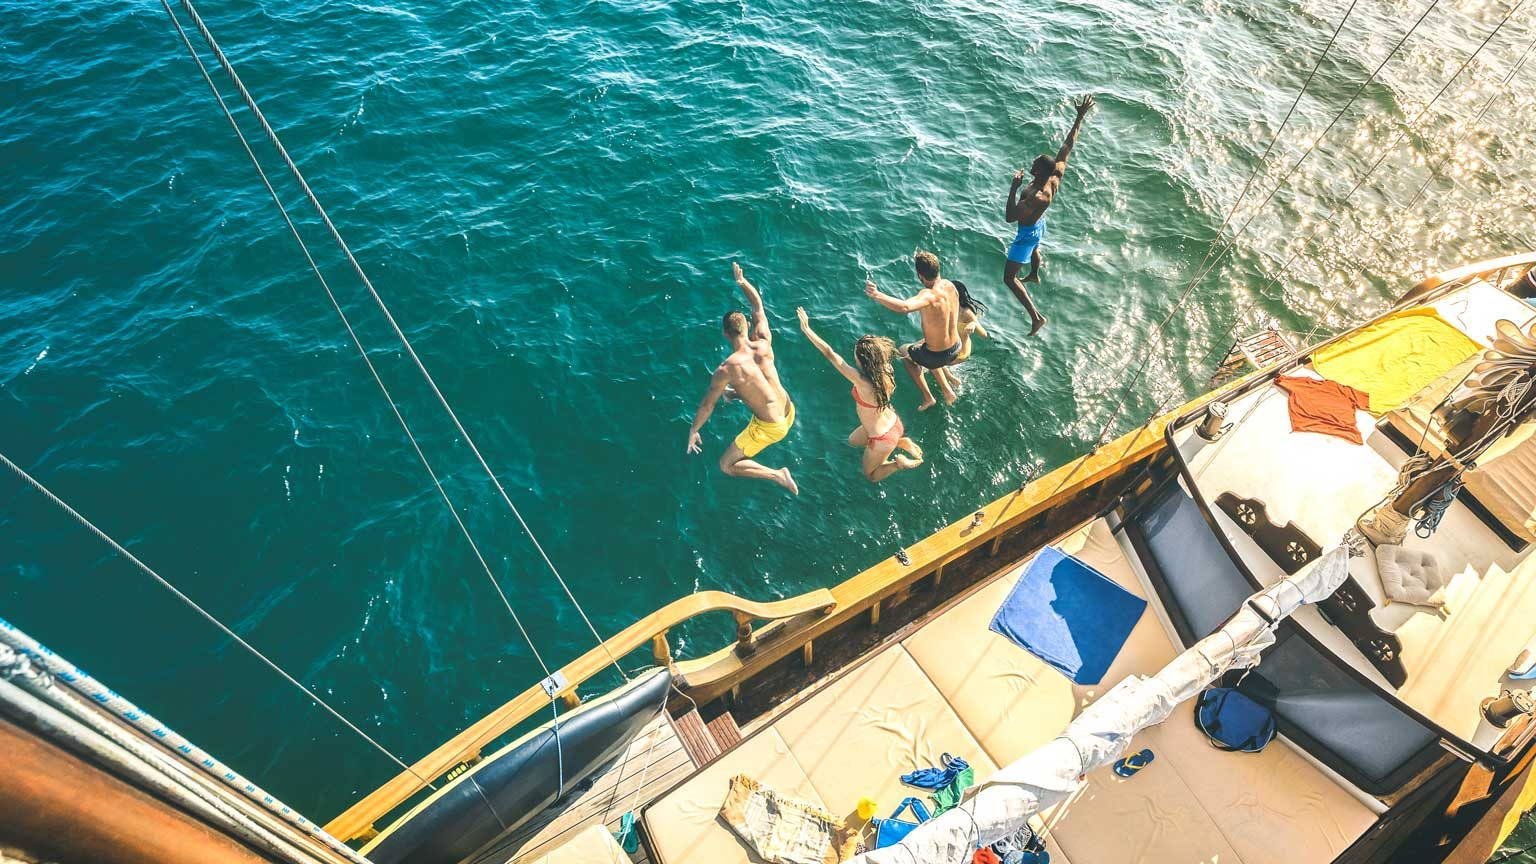 Jumping into the sea from a sailboat